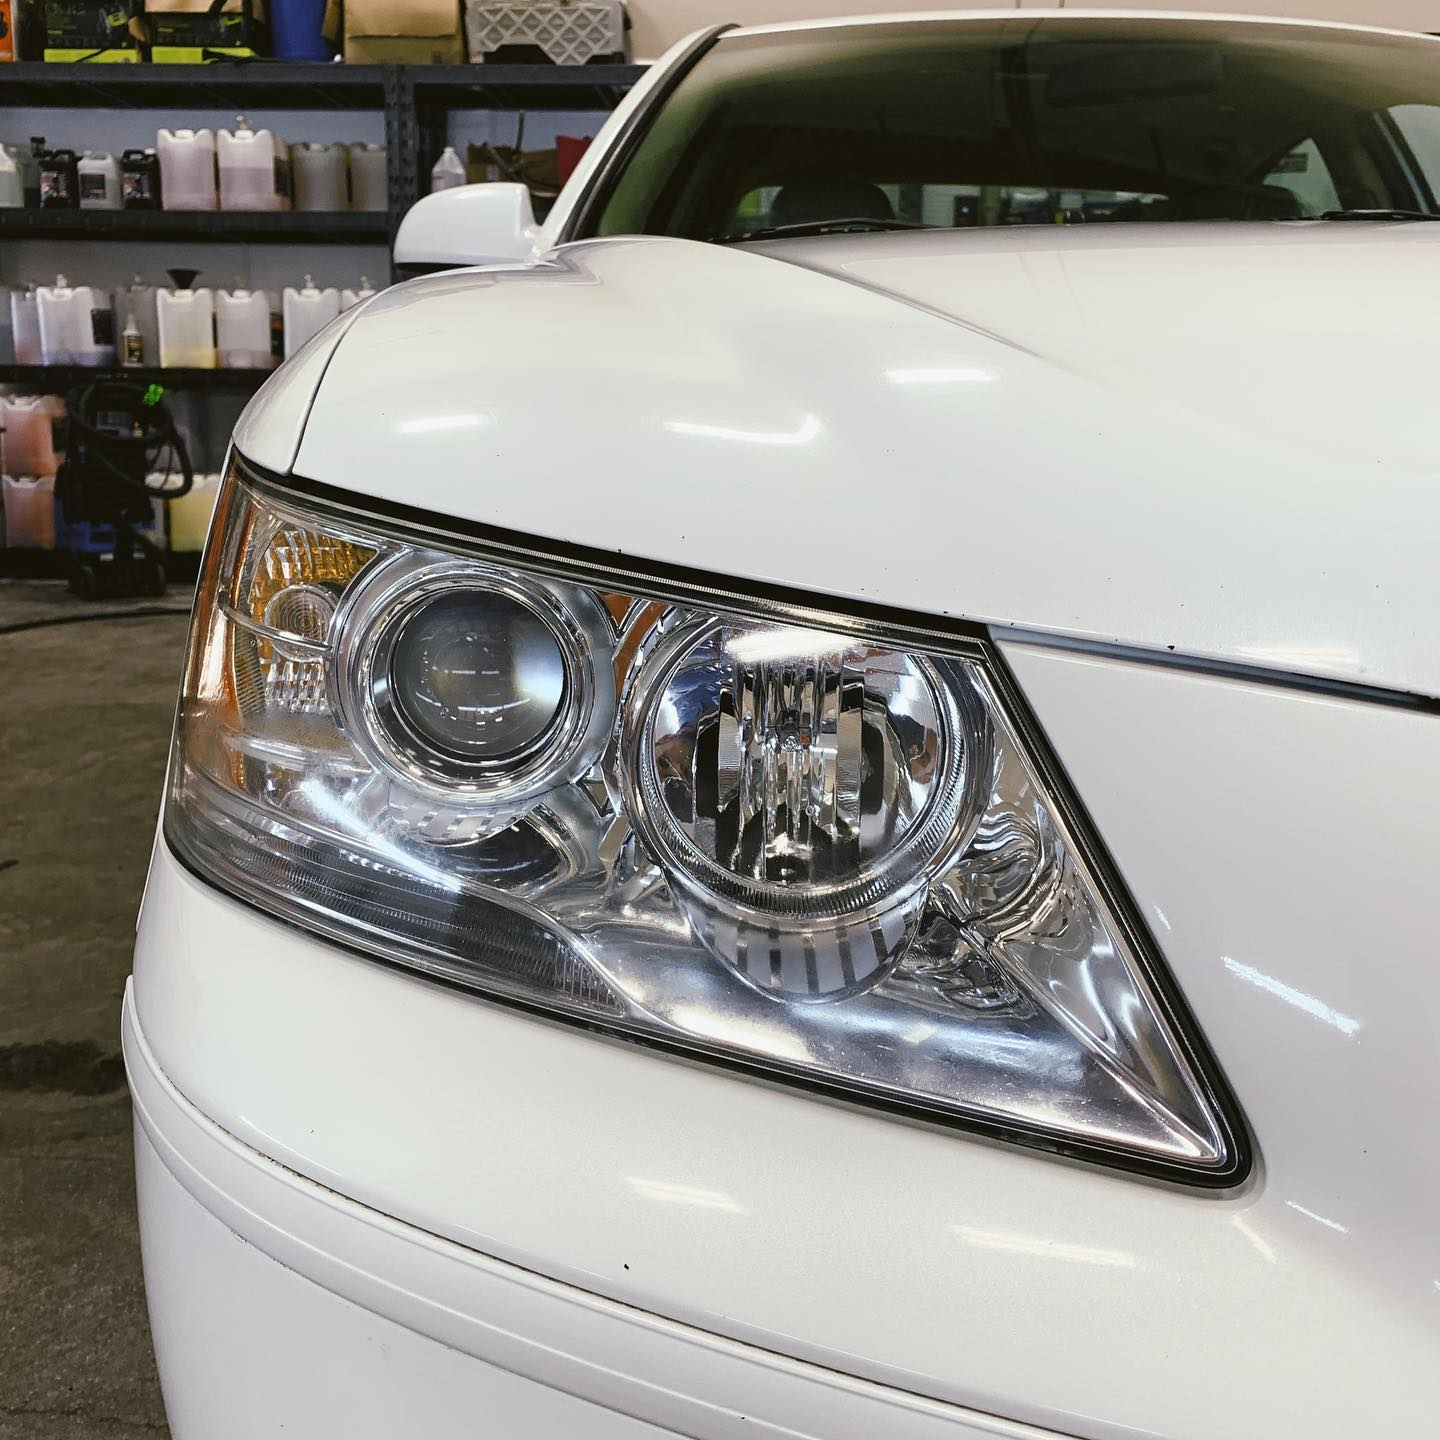 What are some benefits of headlight restoration?